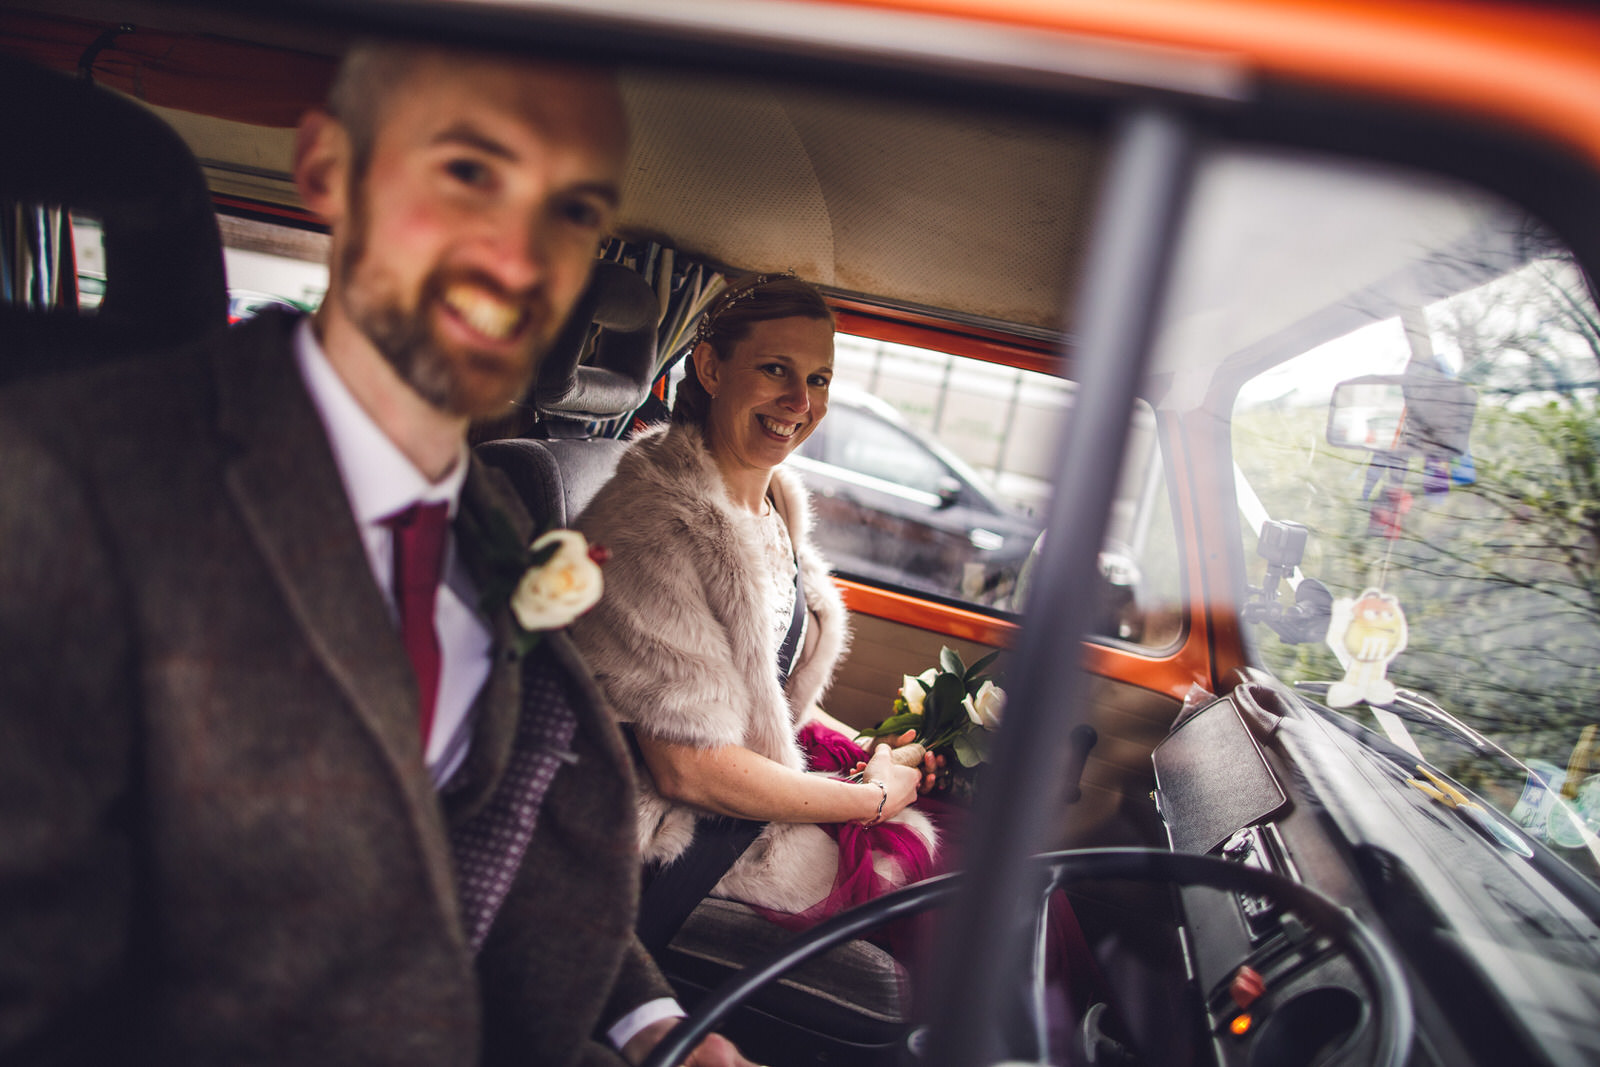 Roger_kenny-wedding-photographer-wicklow-dublin-zoo_077.jpg